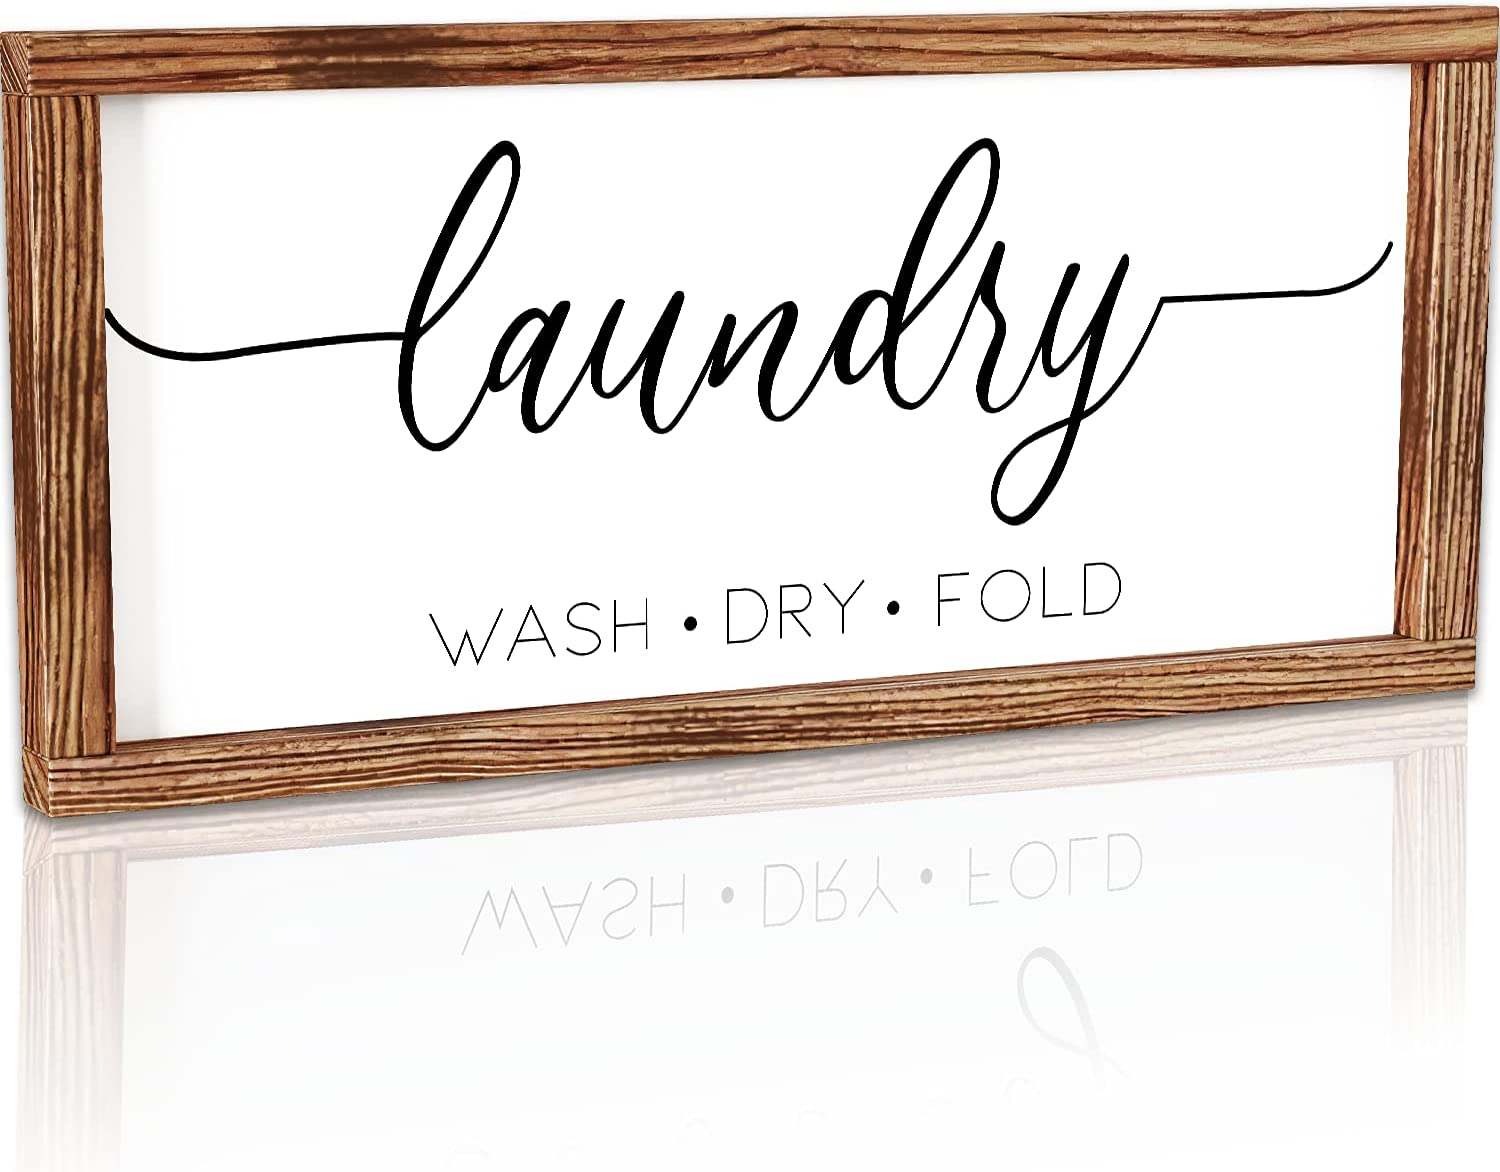 Laundry Signs for Laundry Room Decor, Laundry Room Decor and Accessories, Laundry Signs, Farmhouse Laundry Room Decor, Laundry Signs Wall Decor, Farmhouse Laundry Decor, Laundry Room Signs Wall Decor